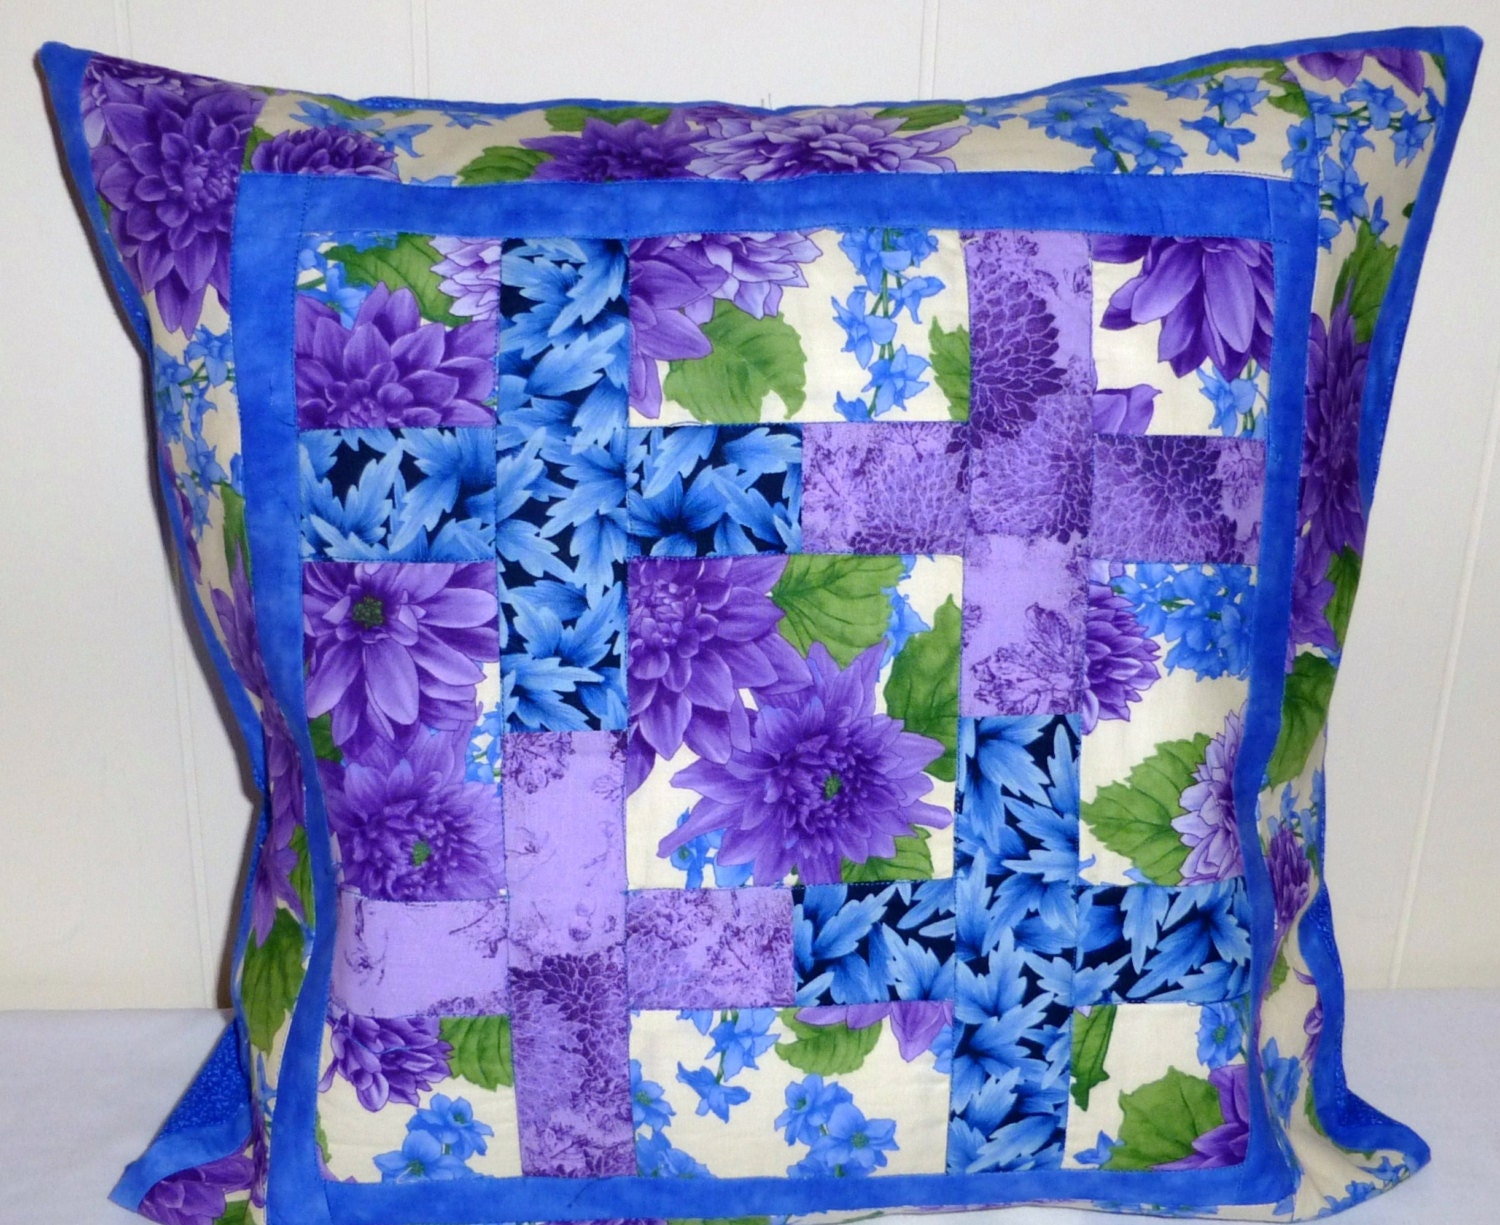 Quilted Pillow Patchwork 18inSquare PurpleFlowers Blue HomeAccent - SuesCreatingCottage